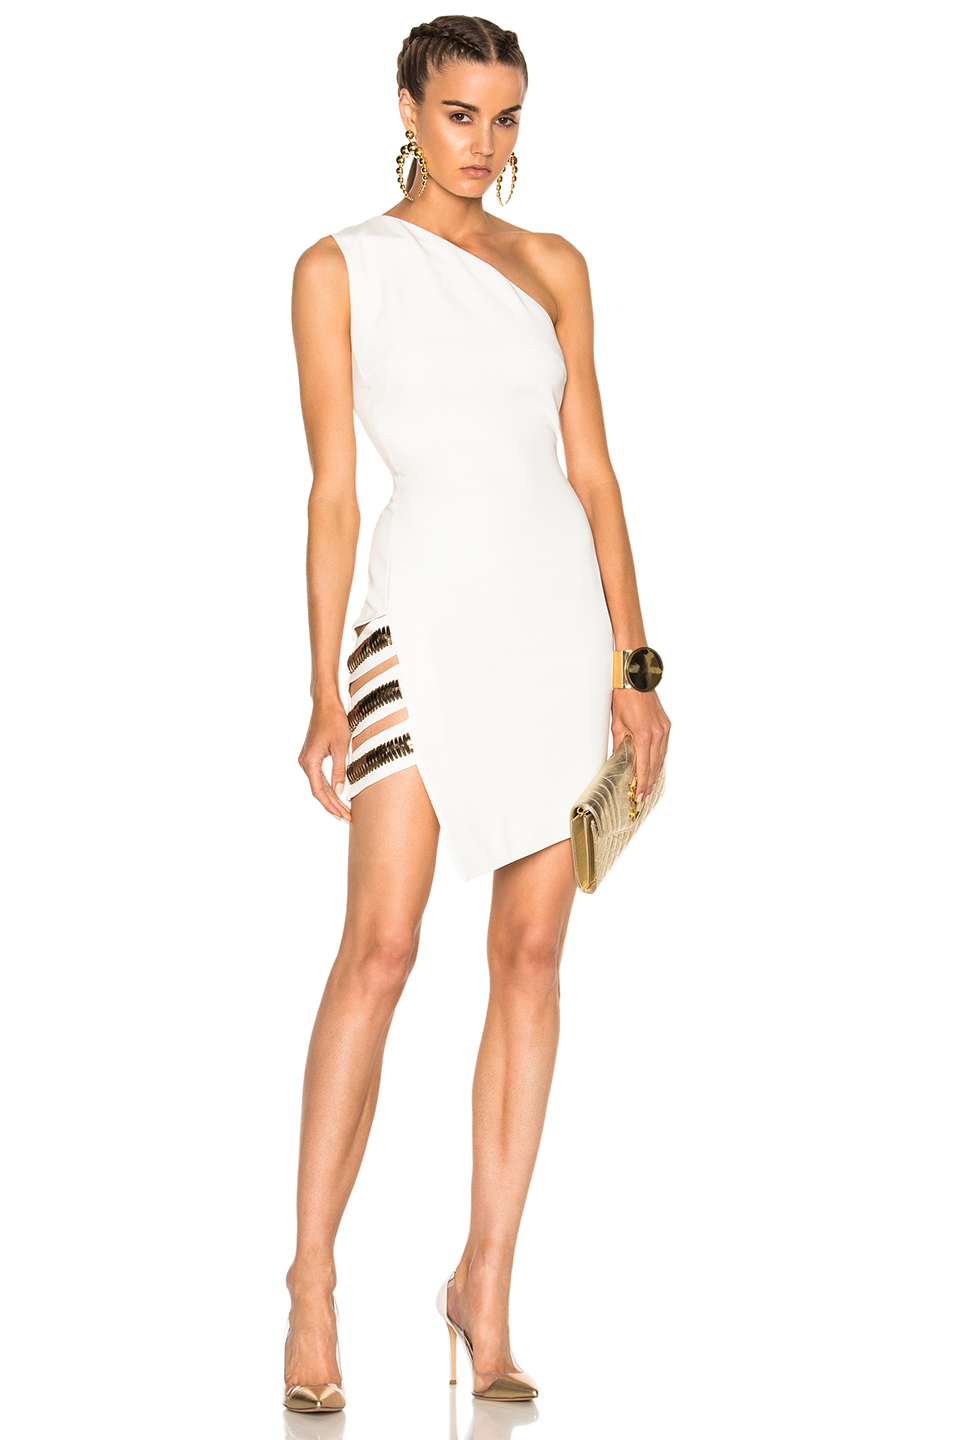 HANEY for FWRD Georgia Dress in White